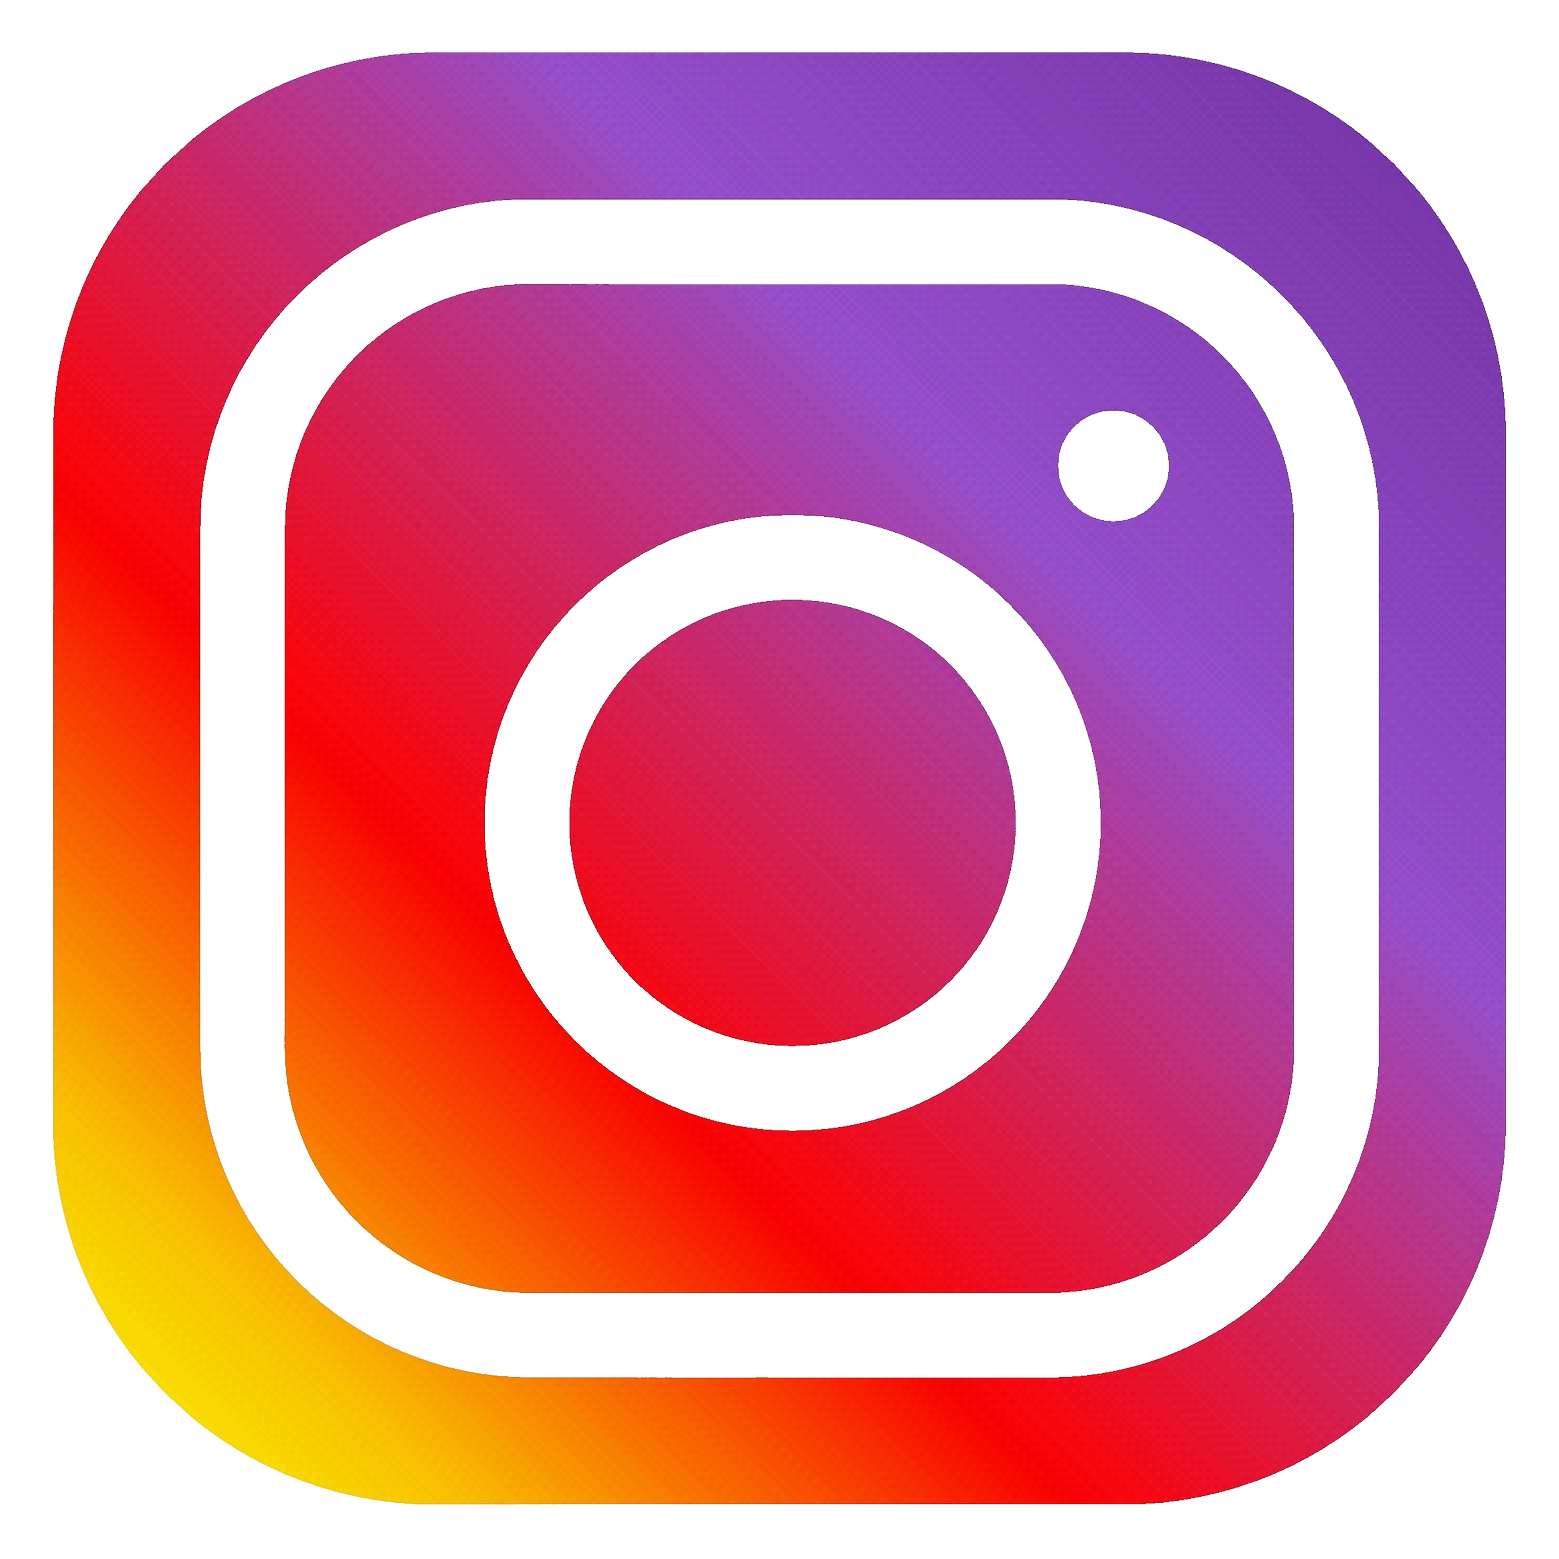 Logo Computer Layout Instagram Icons PNG File HD PNG Image